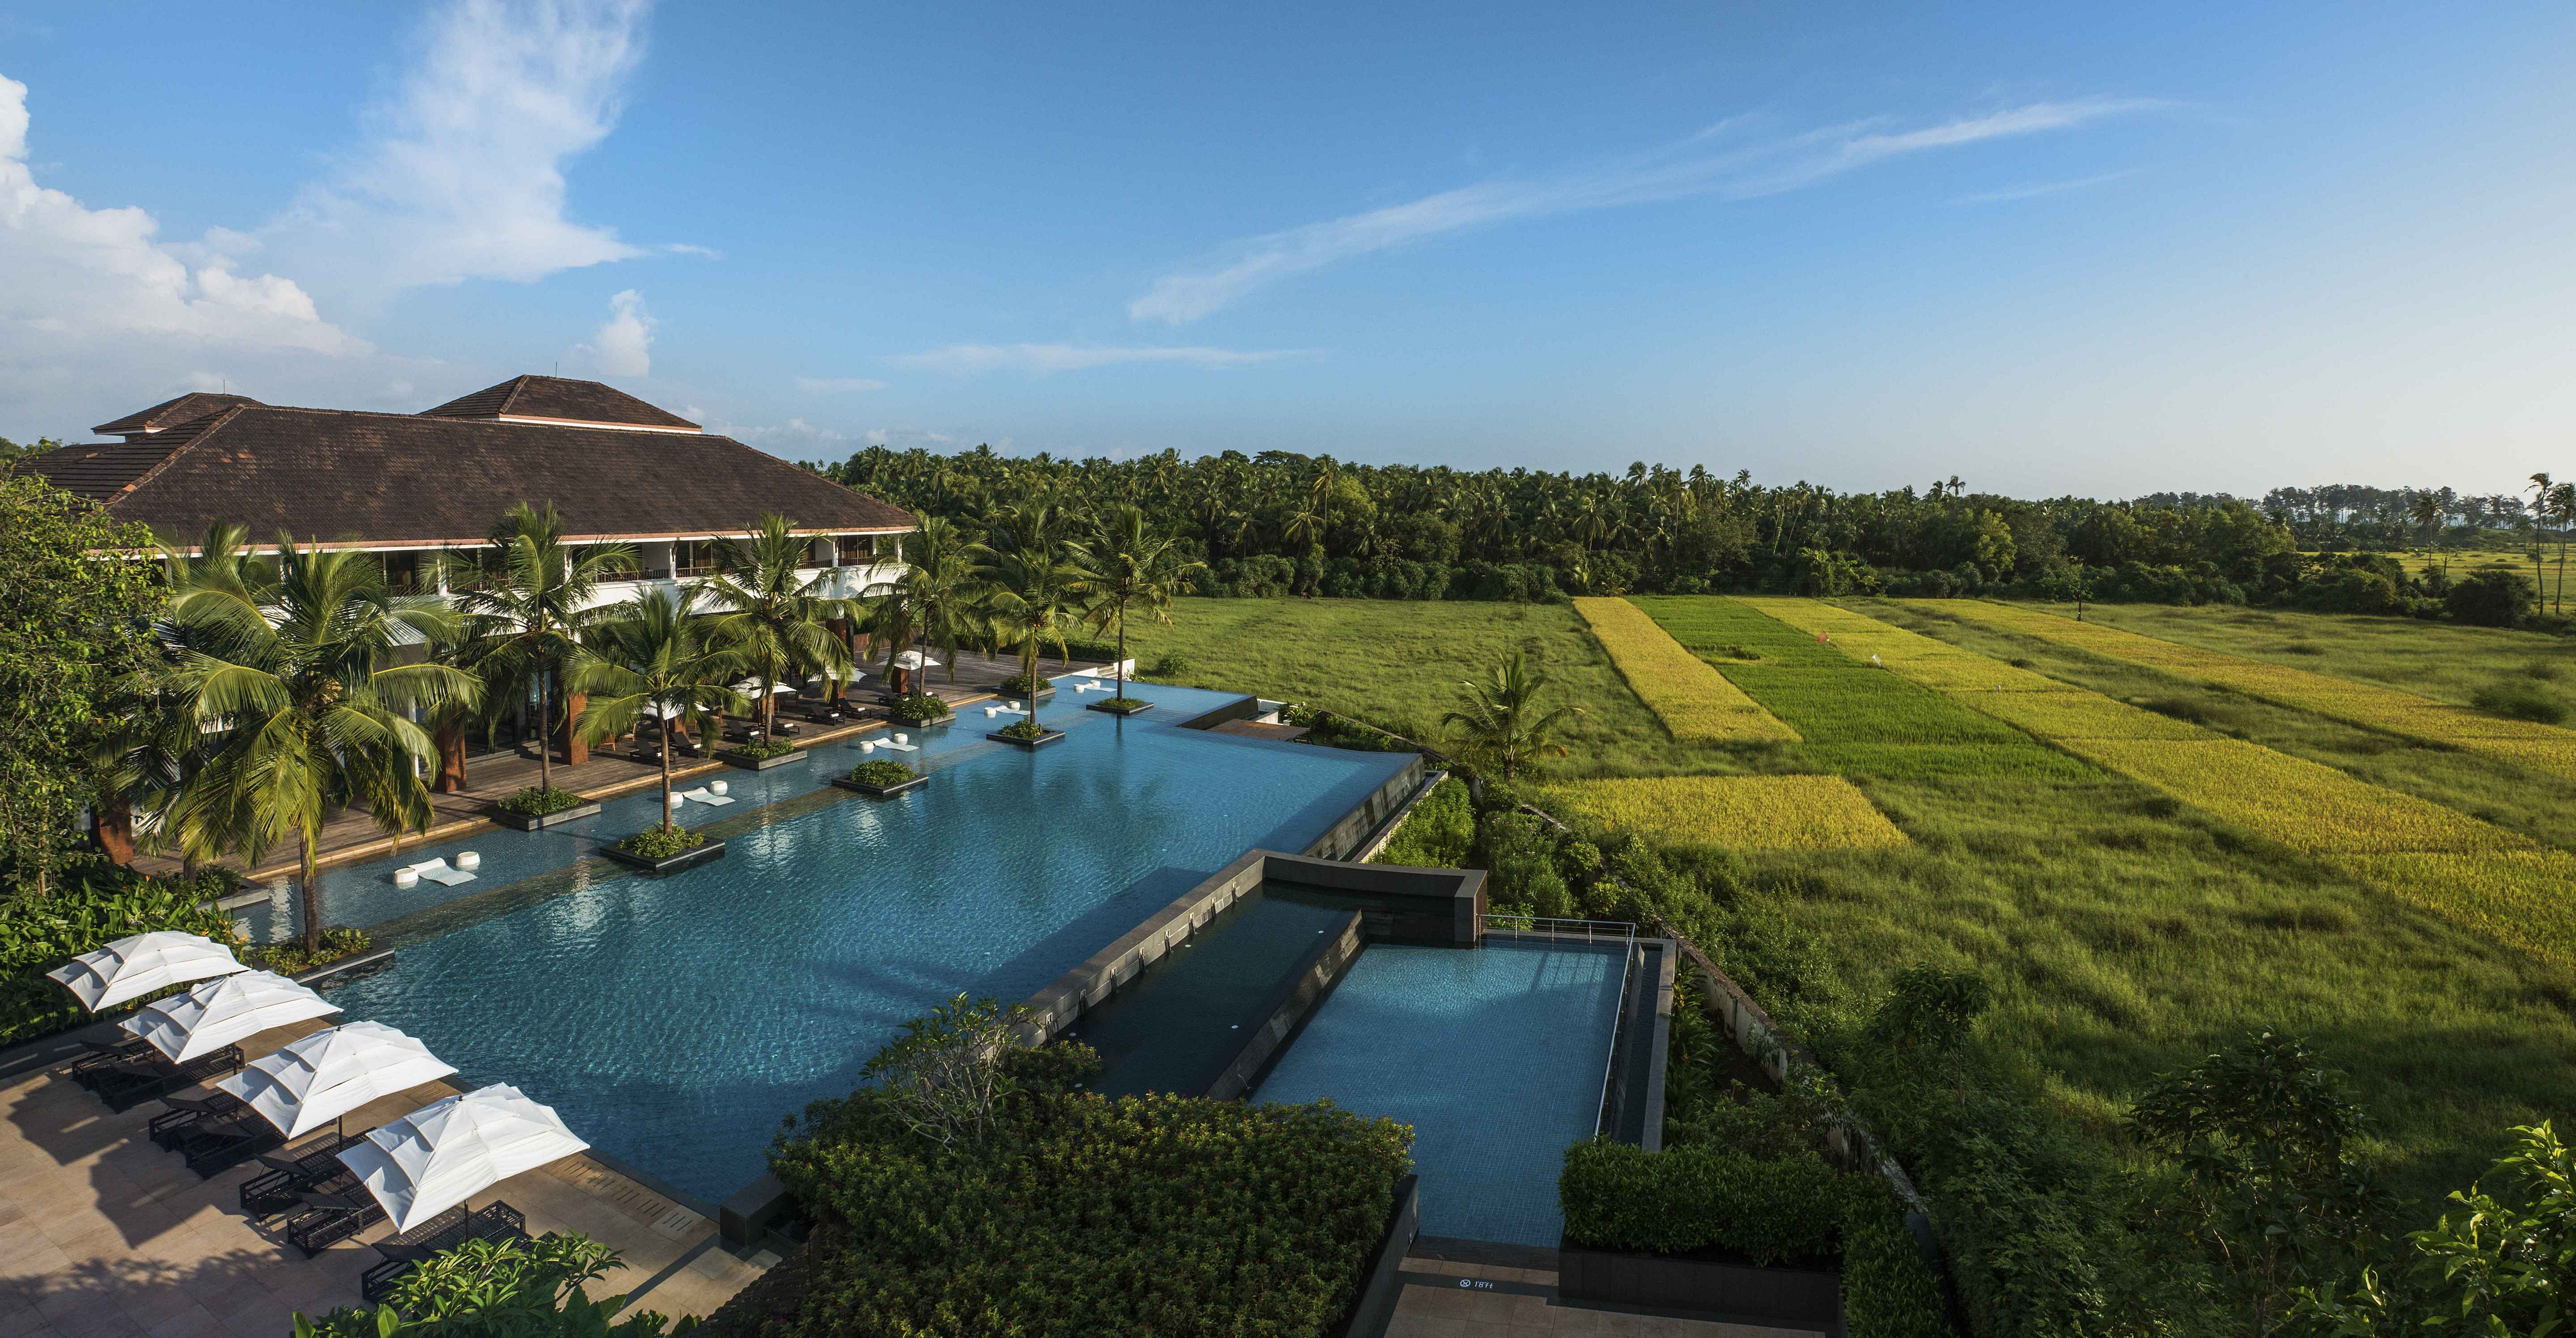 Hit up this luxury hotel in Goa for a self-styled wellness program in 2019